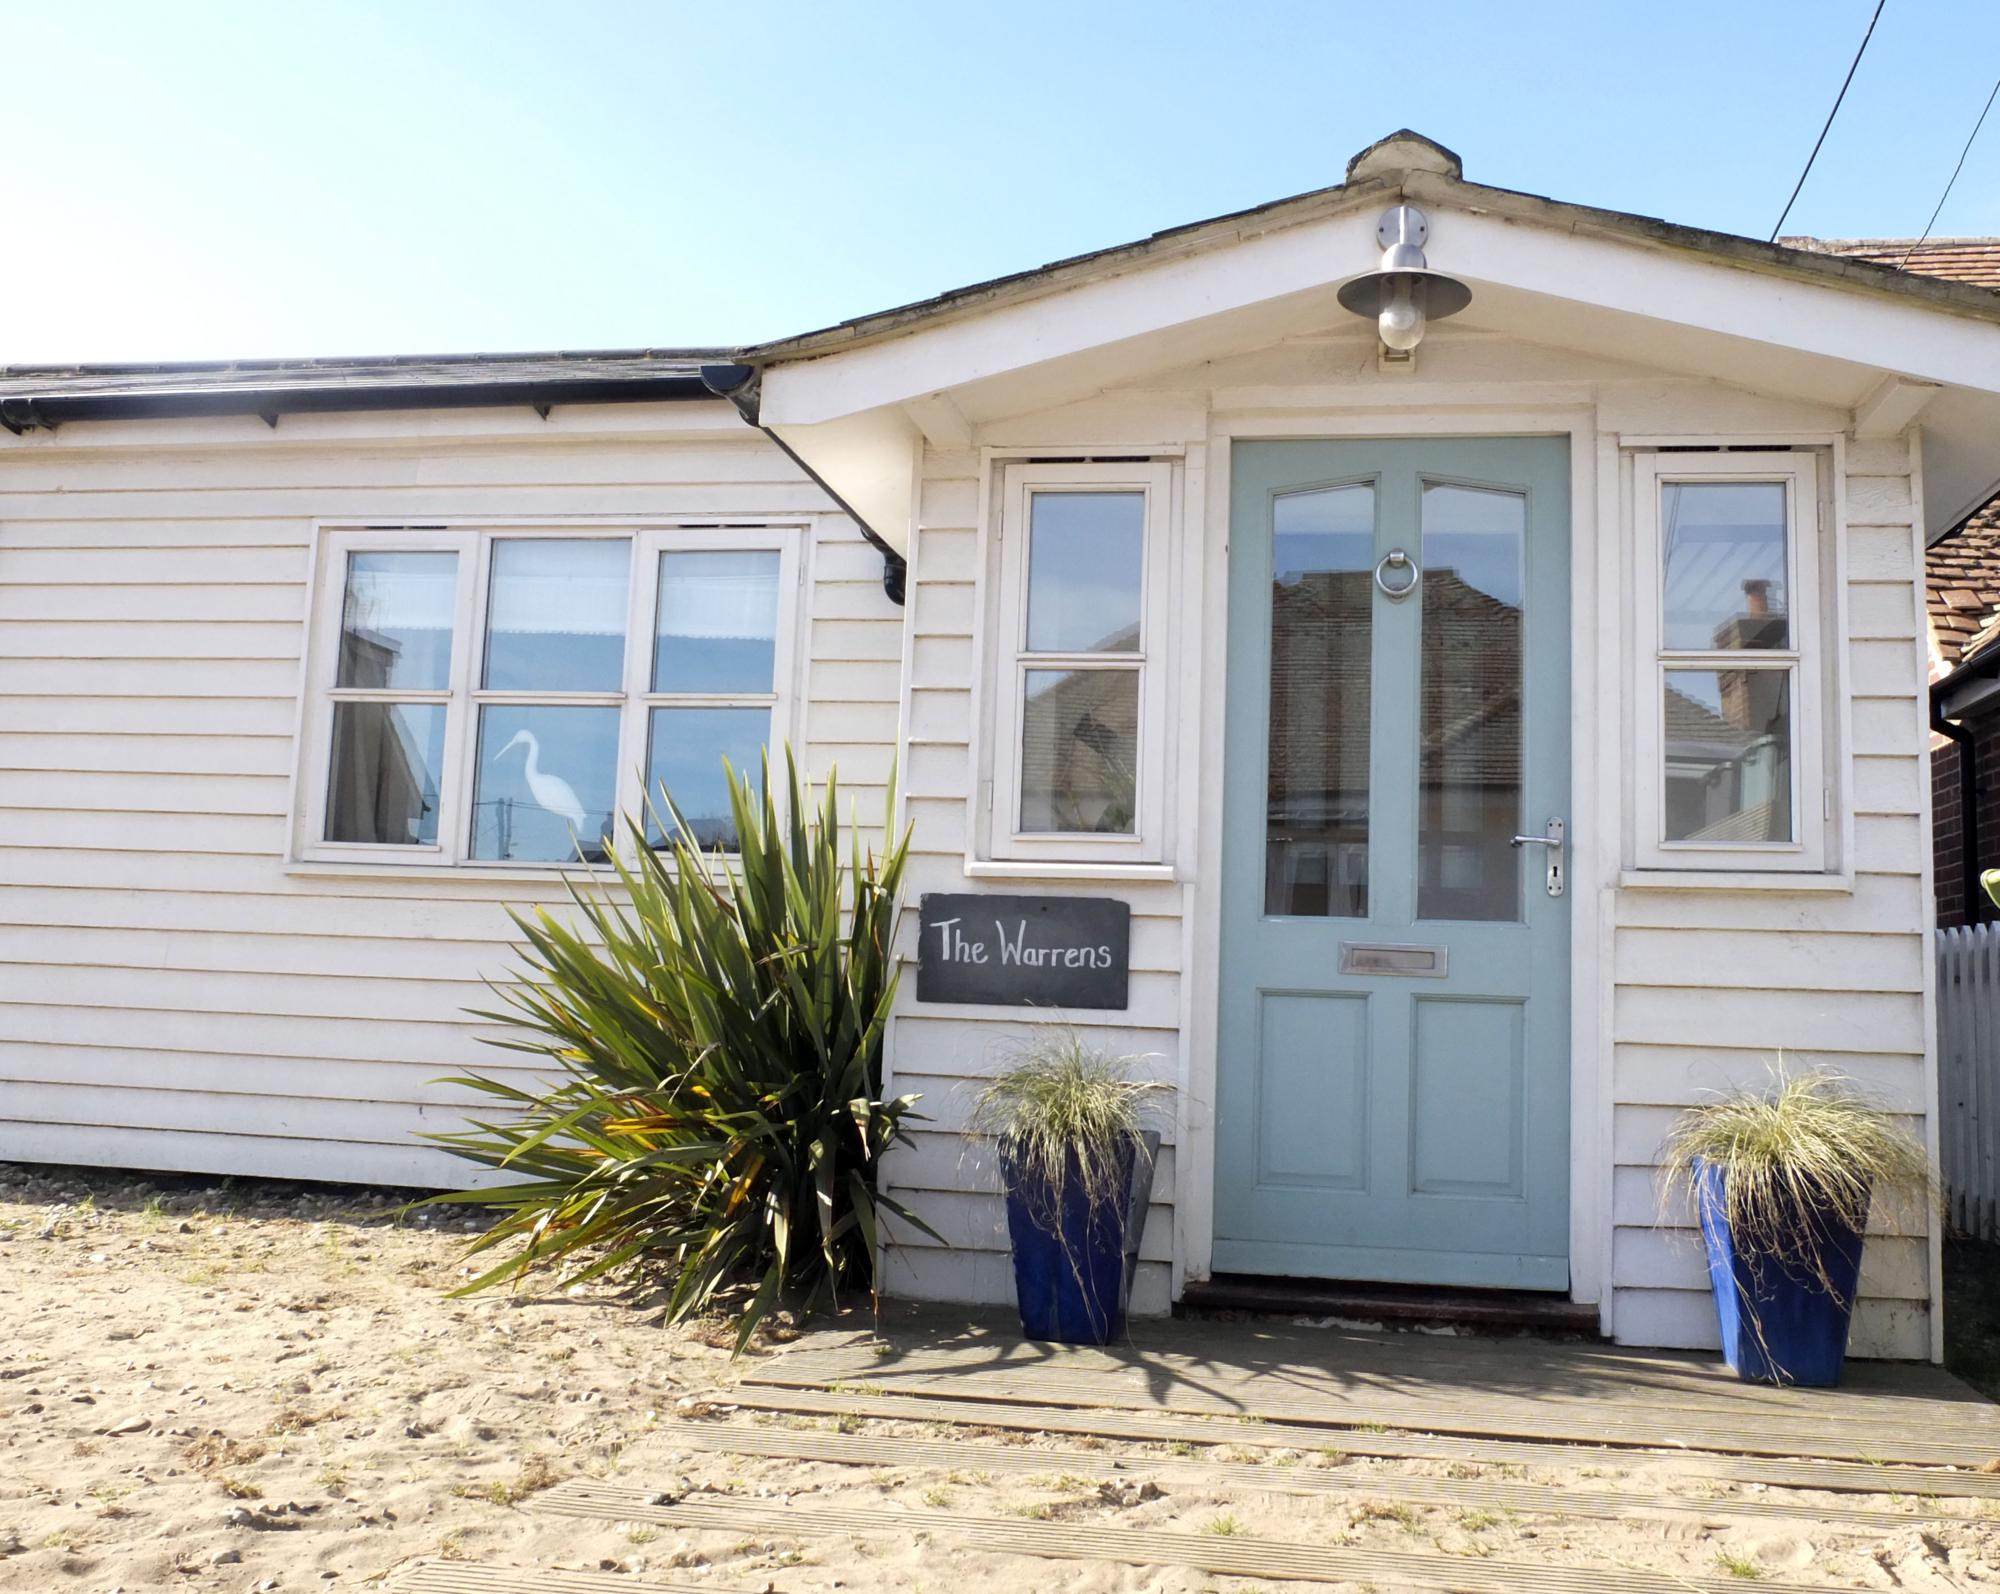 Self-Catering in East Sussex holidays at Cool Places